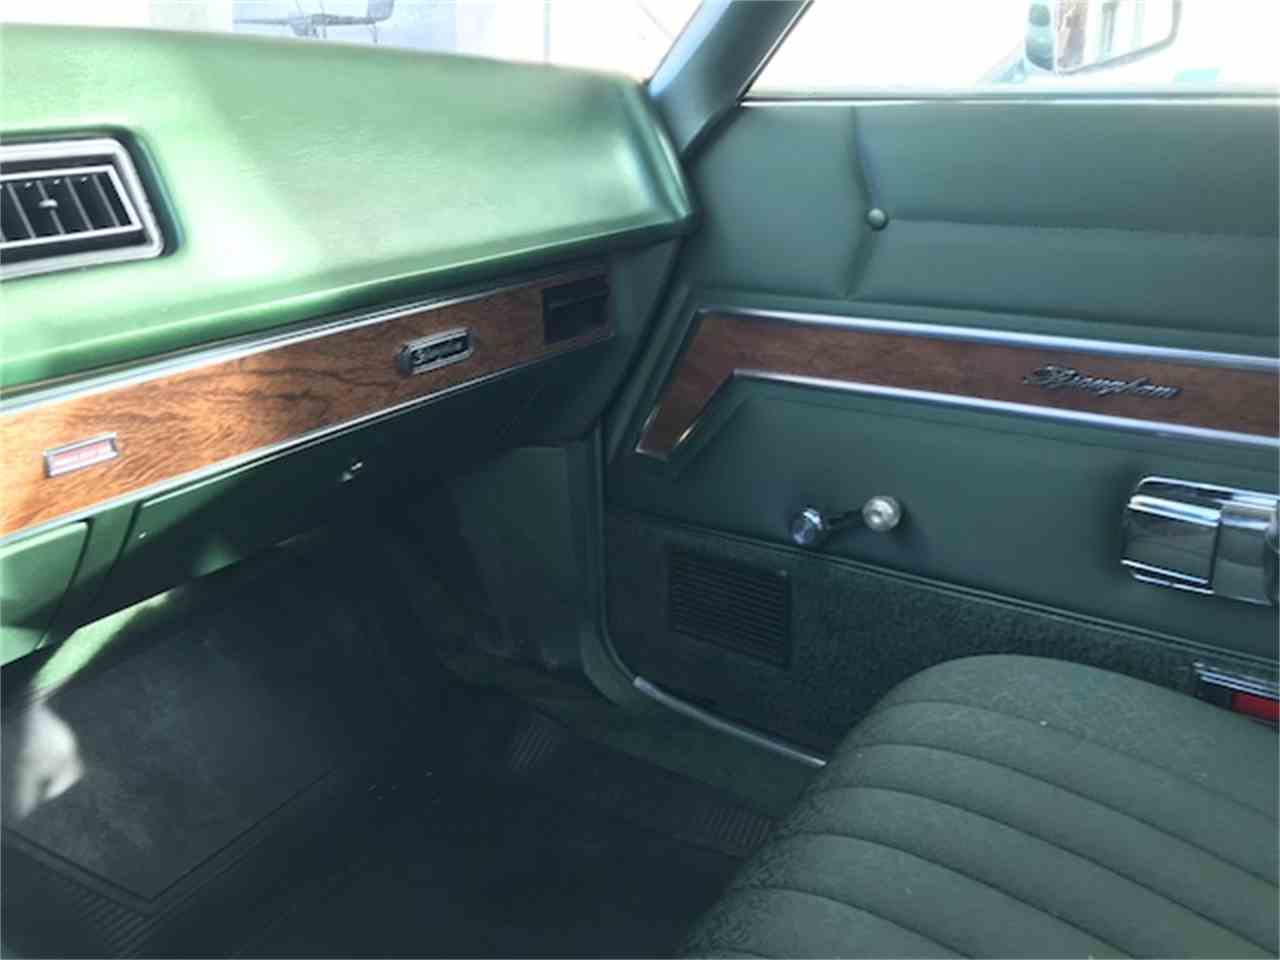 Large Picture of 1972 LTD located in West Virginia - $5,850.00 Offered by a Private Seller - MYMQ